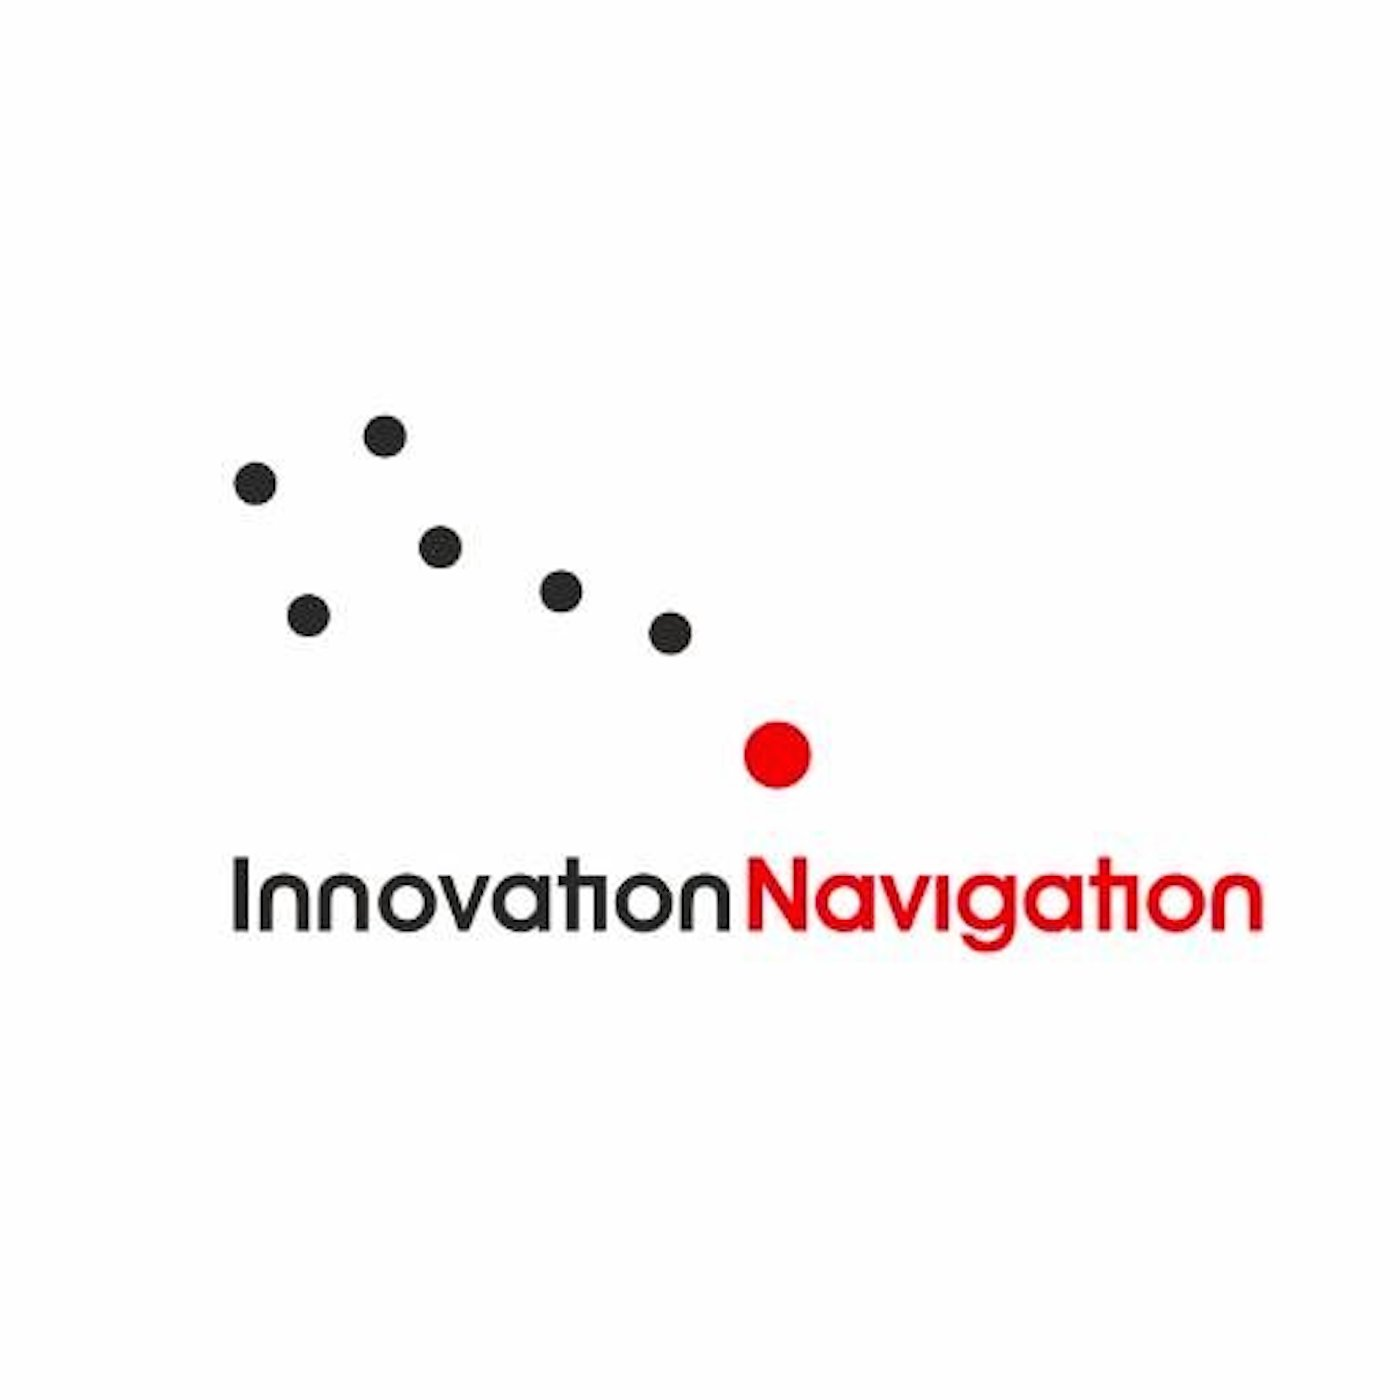 Innovation Navigation 11/4/14 - David Owens, Steve Blank, Michael Raynor